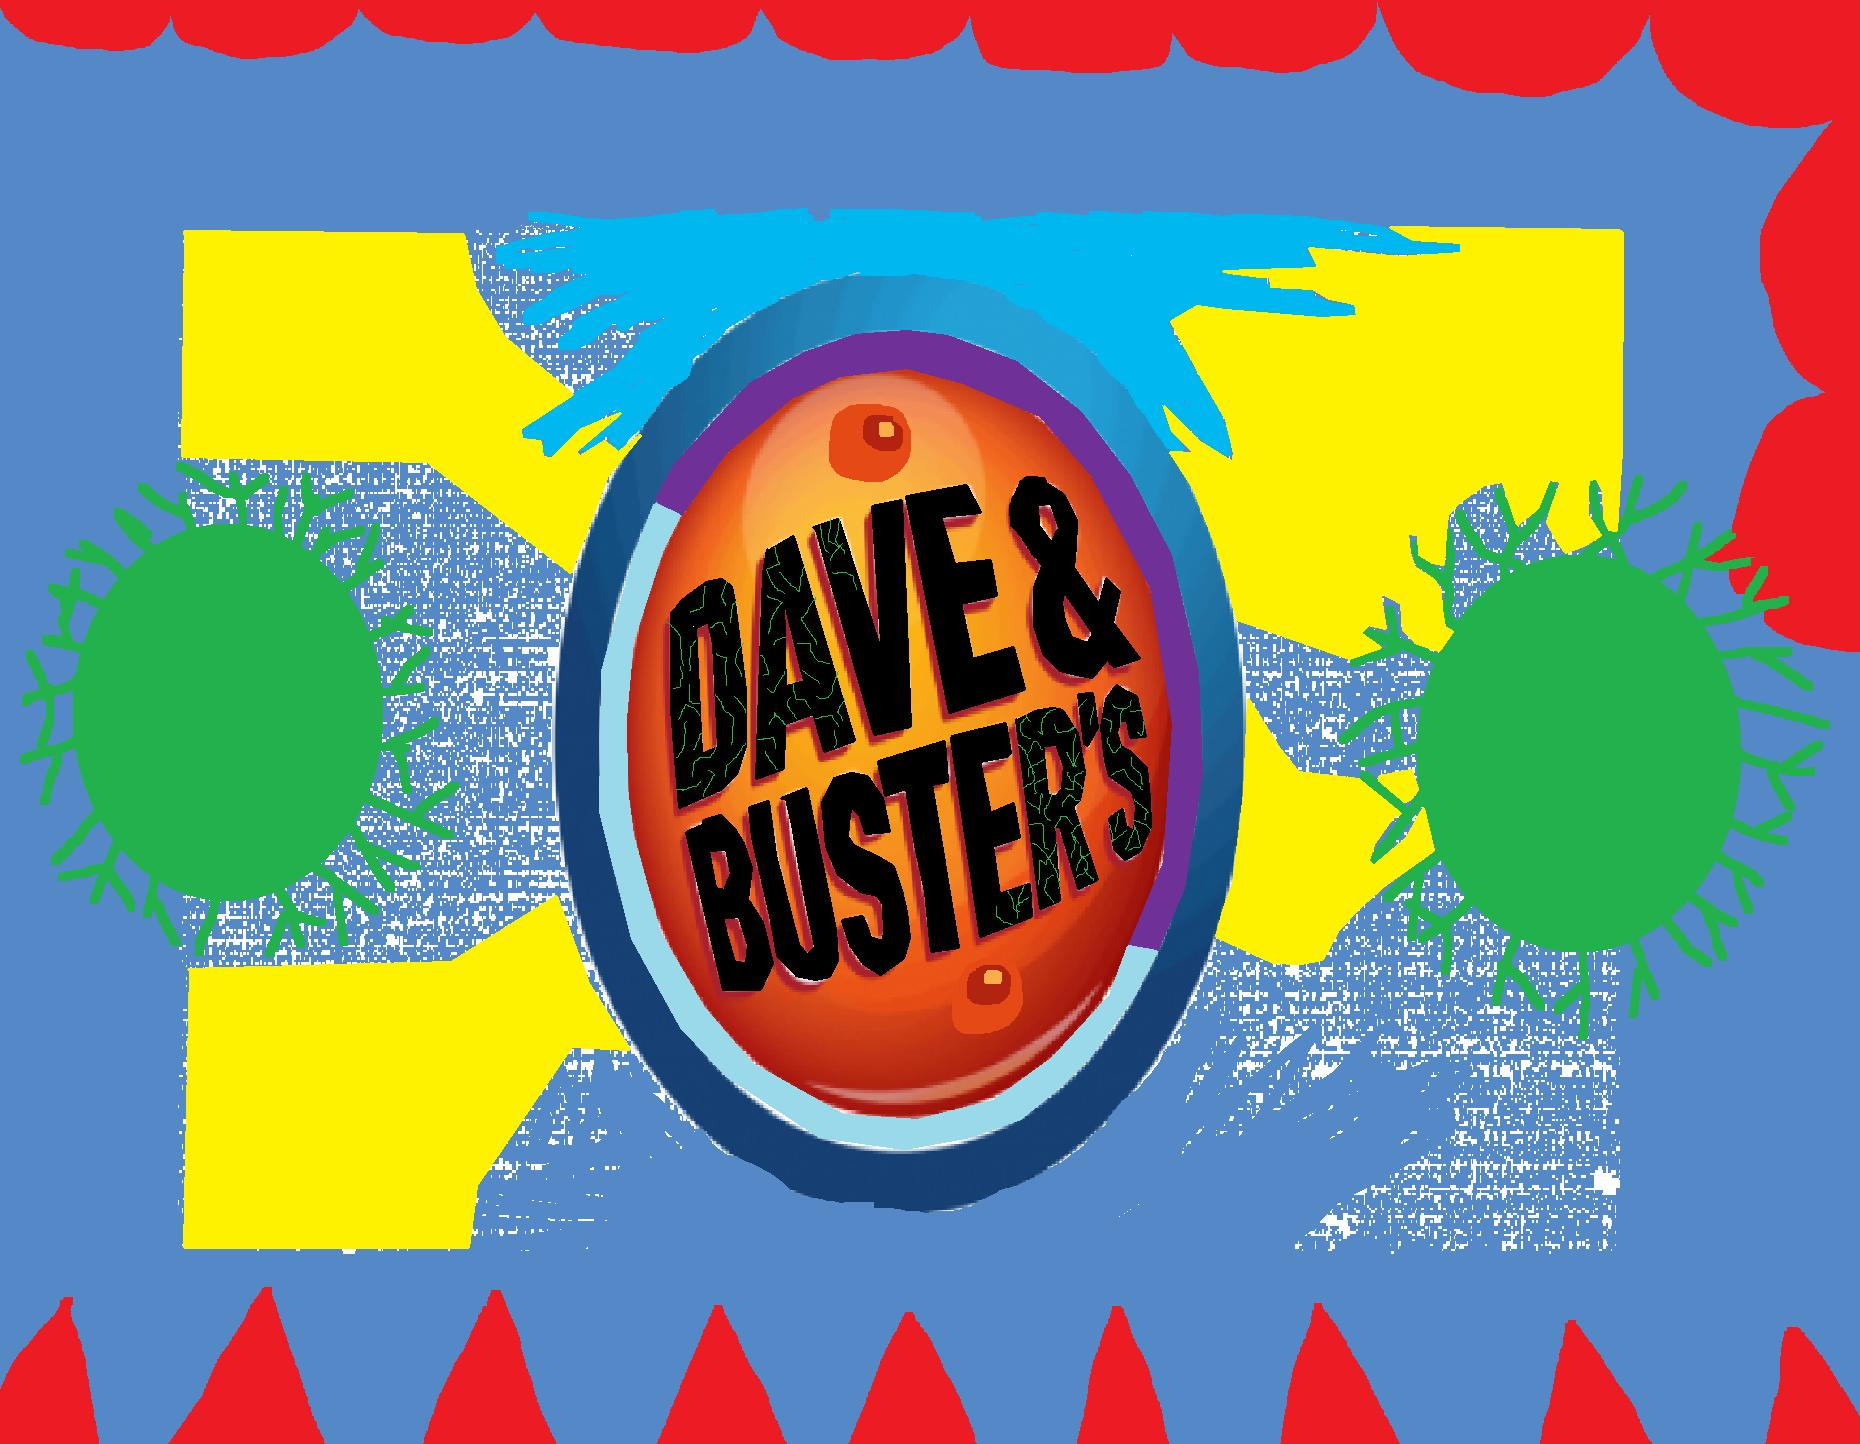 Dave And Busters design